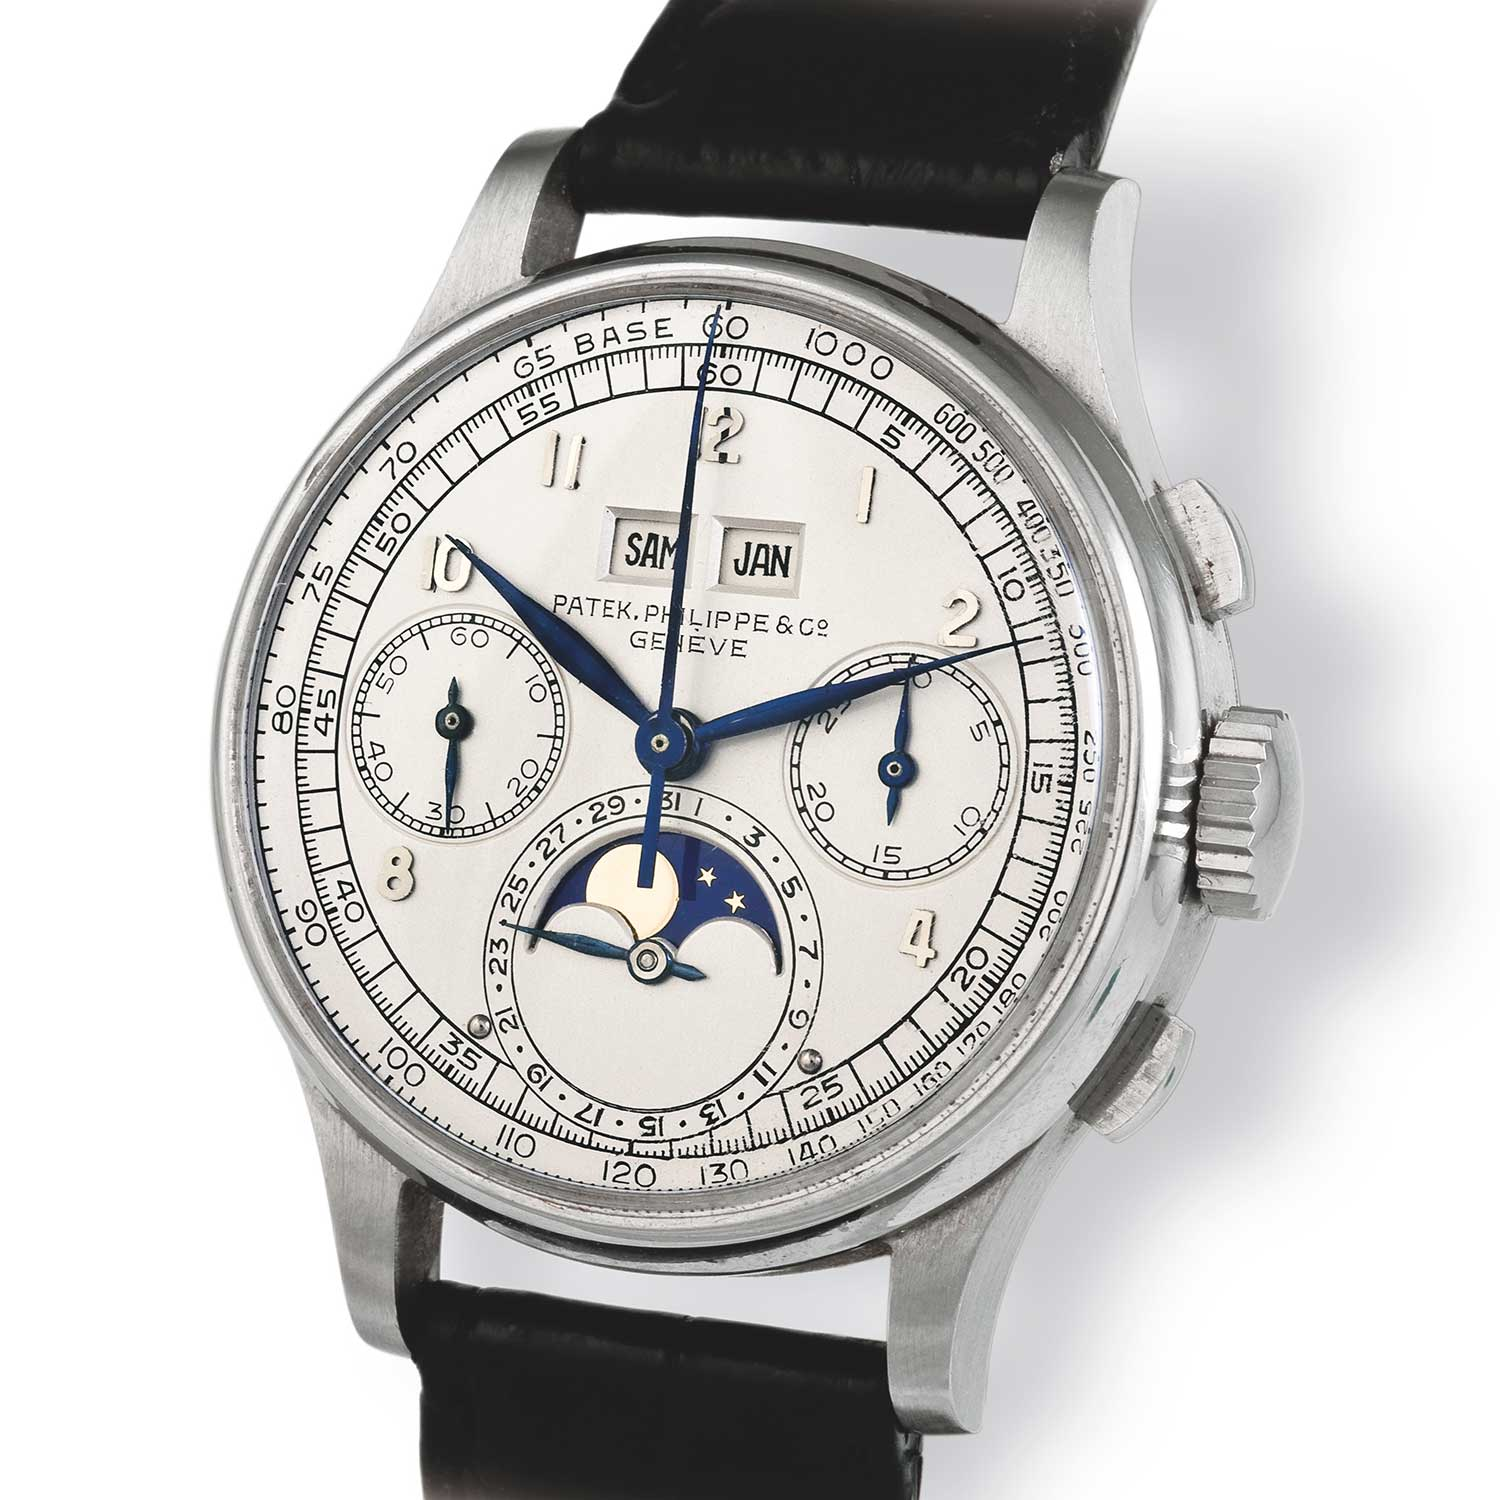 An exceedingly rare stainless-steel Patek Philippe ref. 1518, an example of Patek Philippe's first serially produced chronograph perpetual calendar launched in 1941 and discontinued in 1954) (Image: John Goldberger)